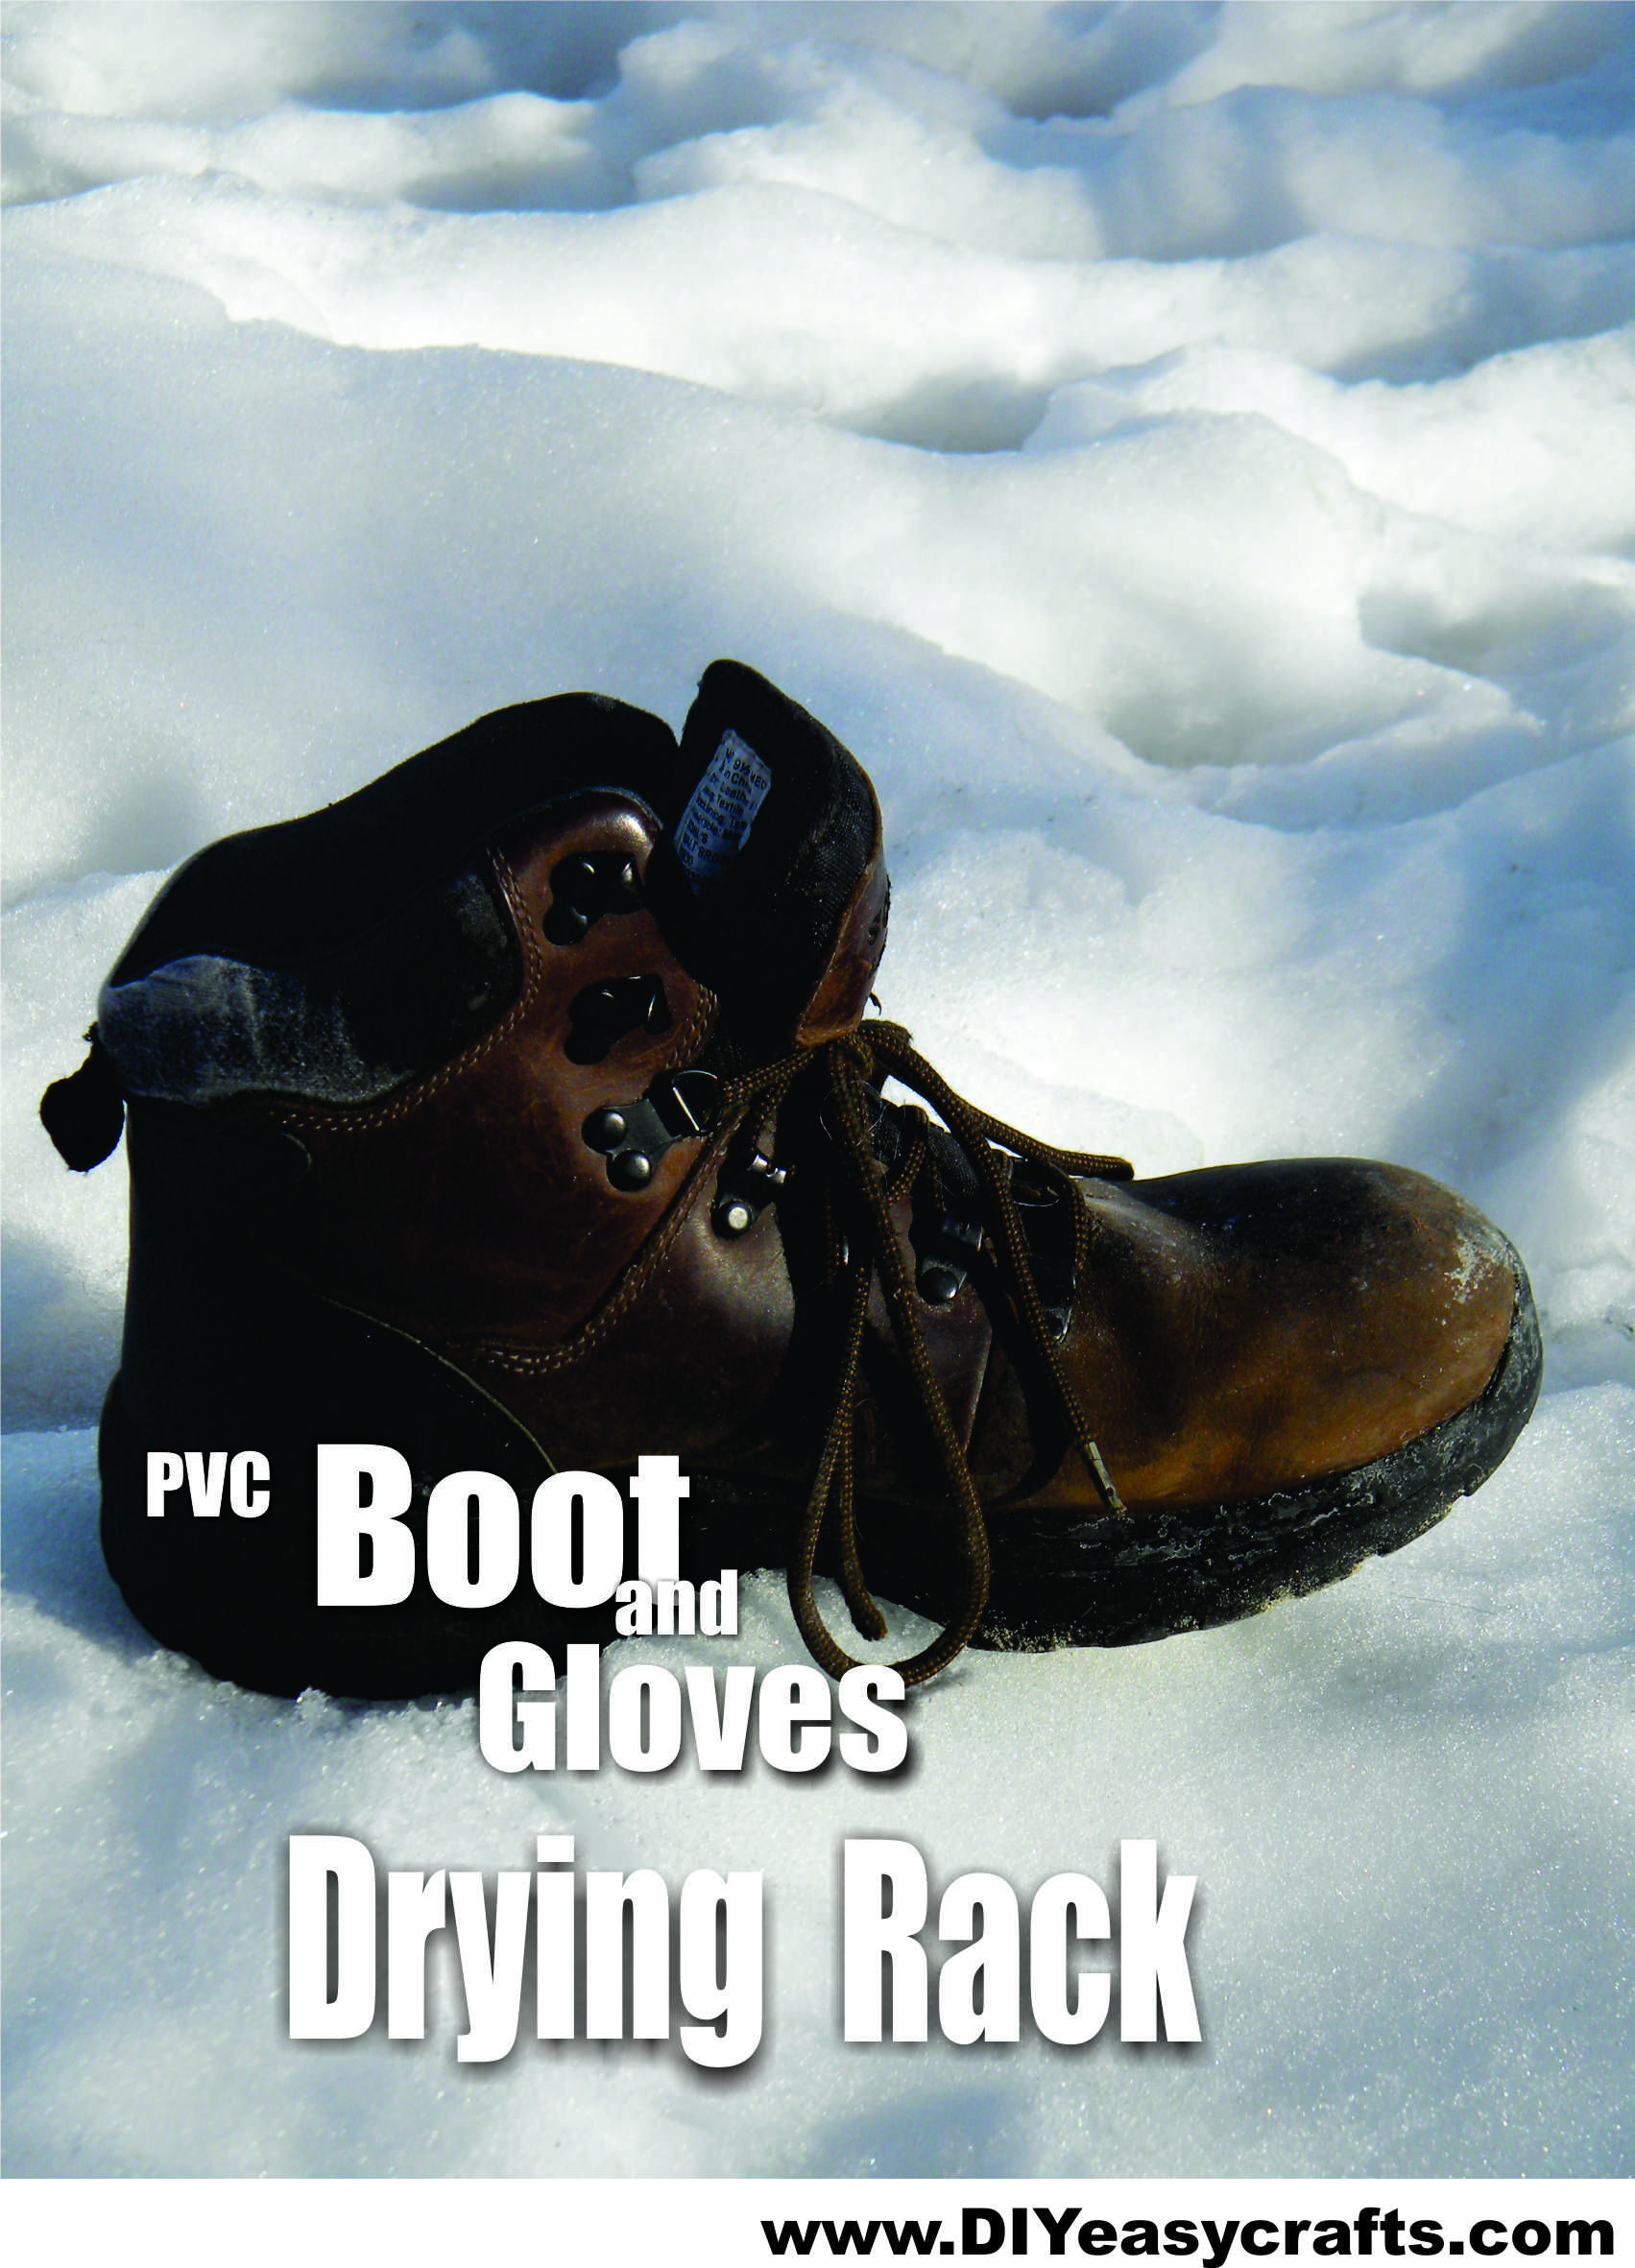 Diy pvc boot and glove drying rack diyeasycrafts diy diy easy pvc boot and glove drying rack anyone that works or plays outdoors in the winter can benefit from this boot and gloves dryer solutioingenieria Images